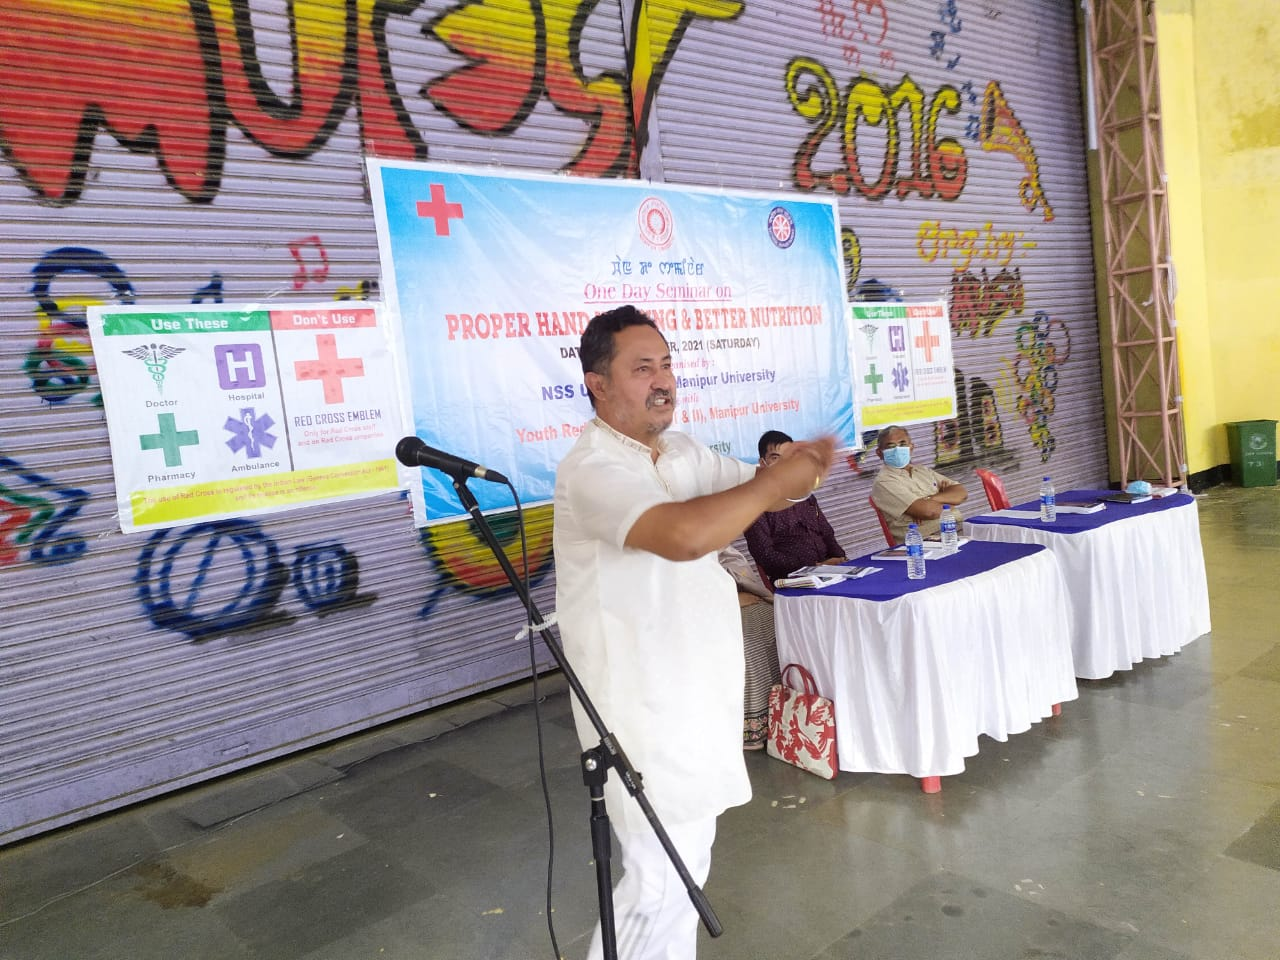 """One Day seminar on """"Proper Hand Washing and Better Nutrition"""""""